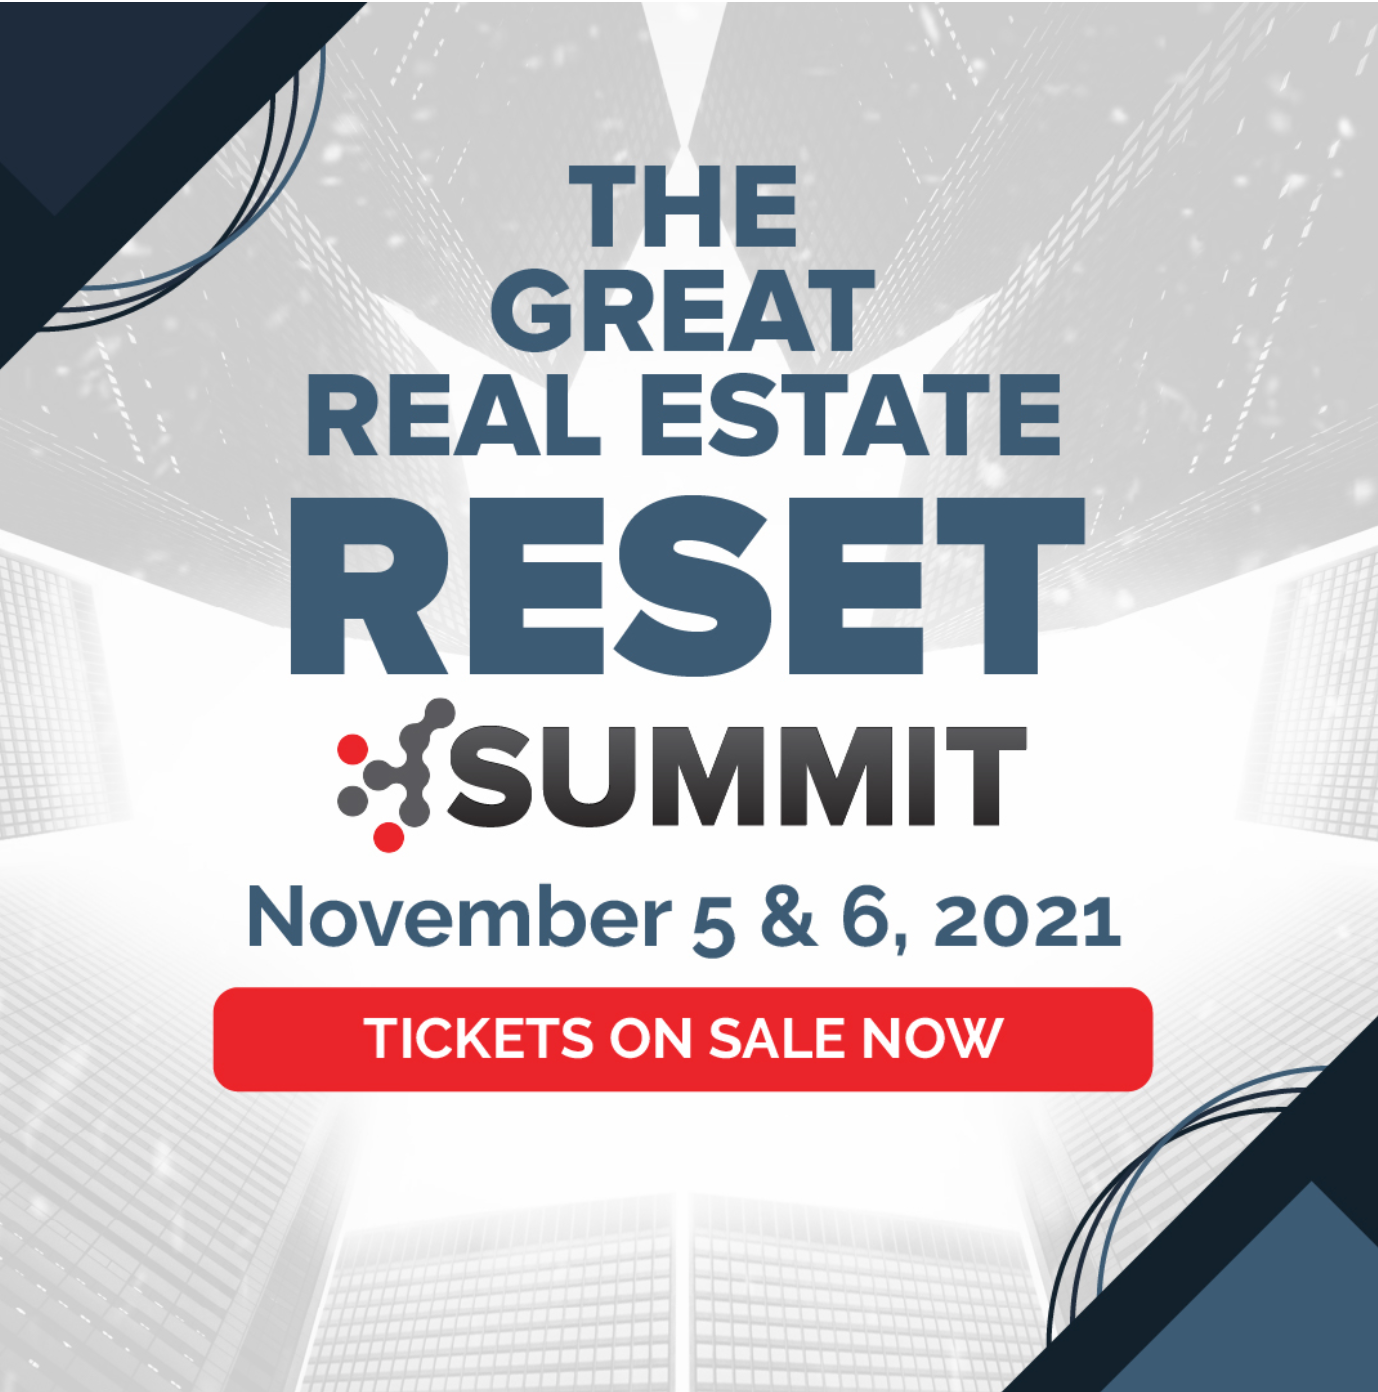 The Great Real Estate Reset Summit